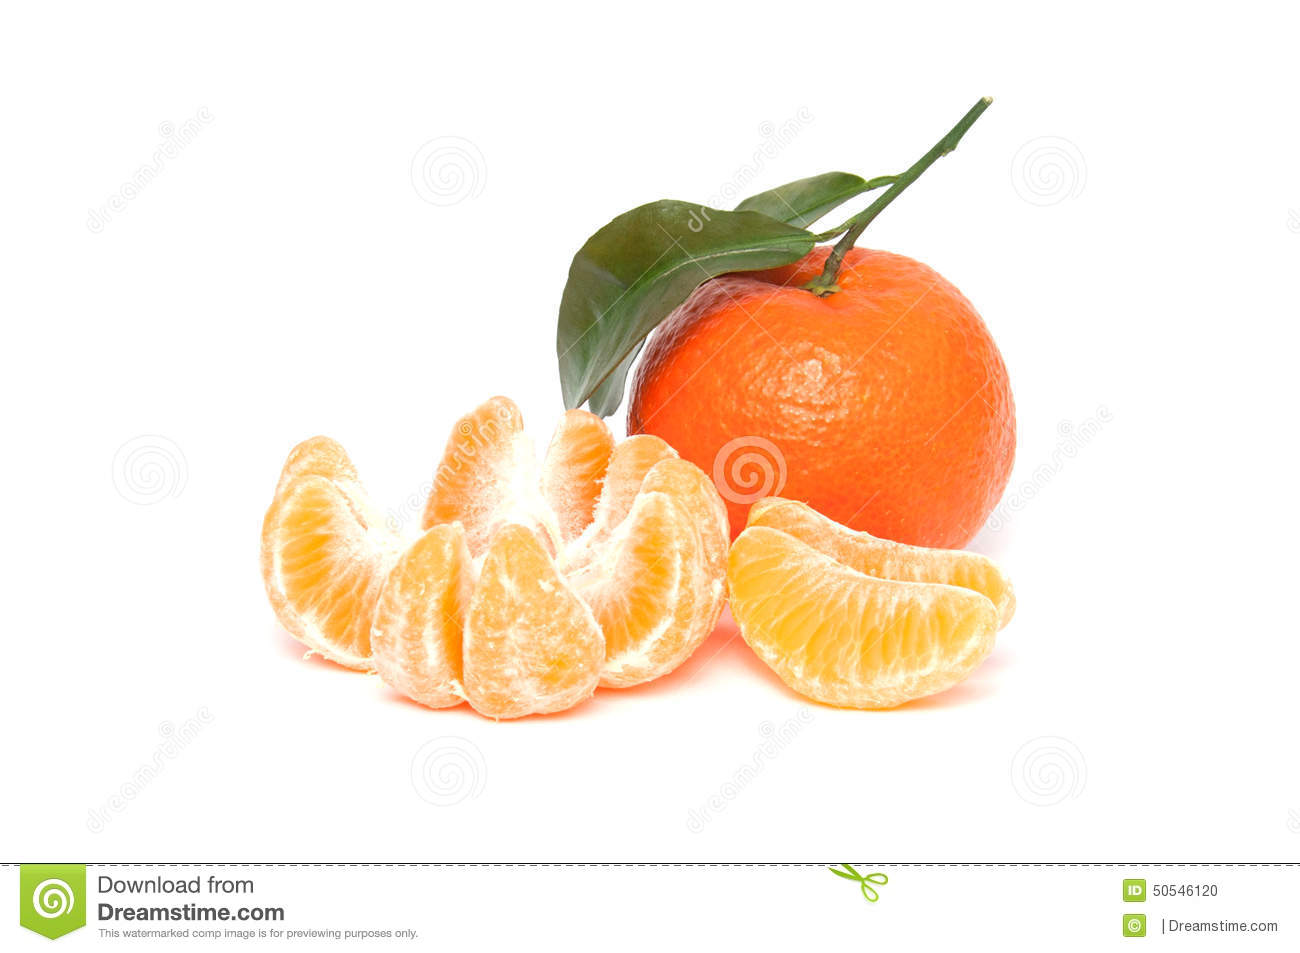 how to eat a tangerine